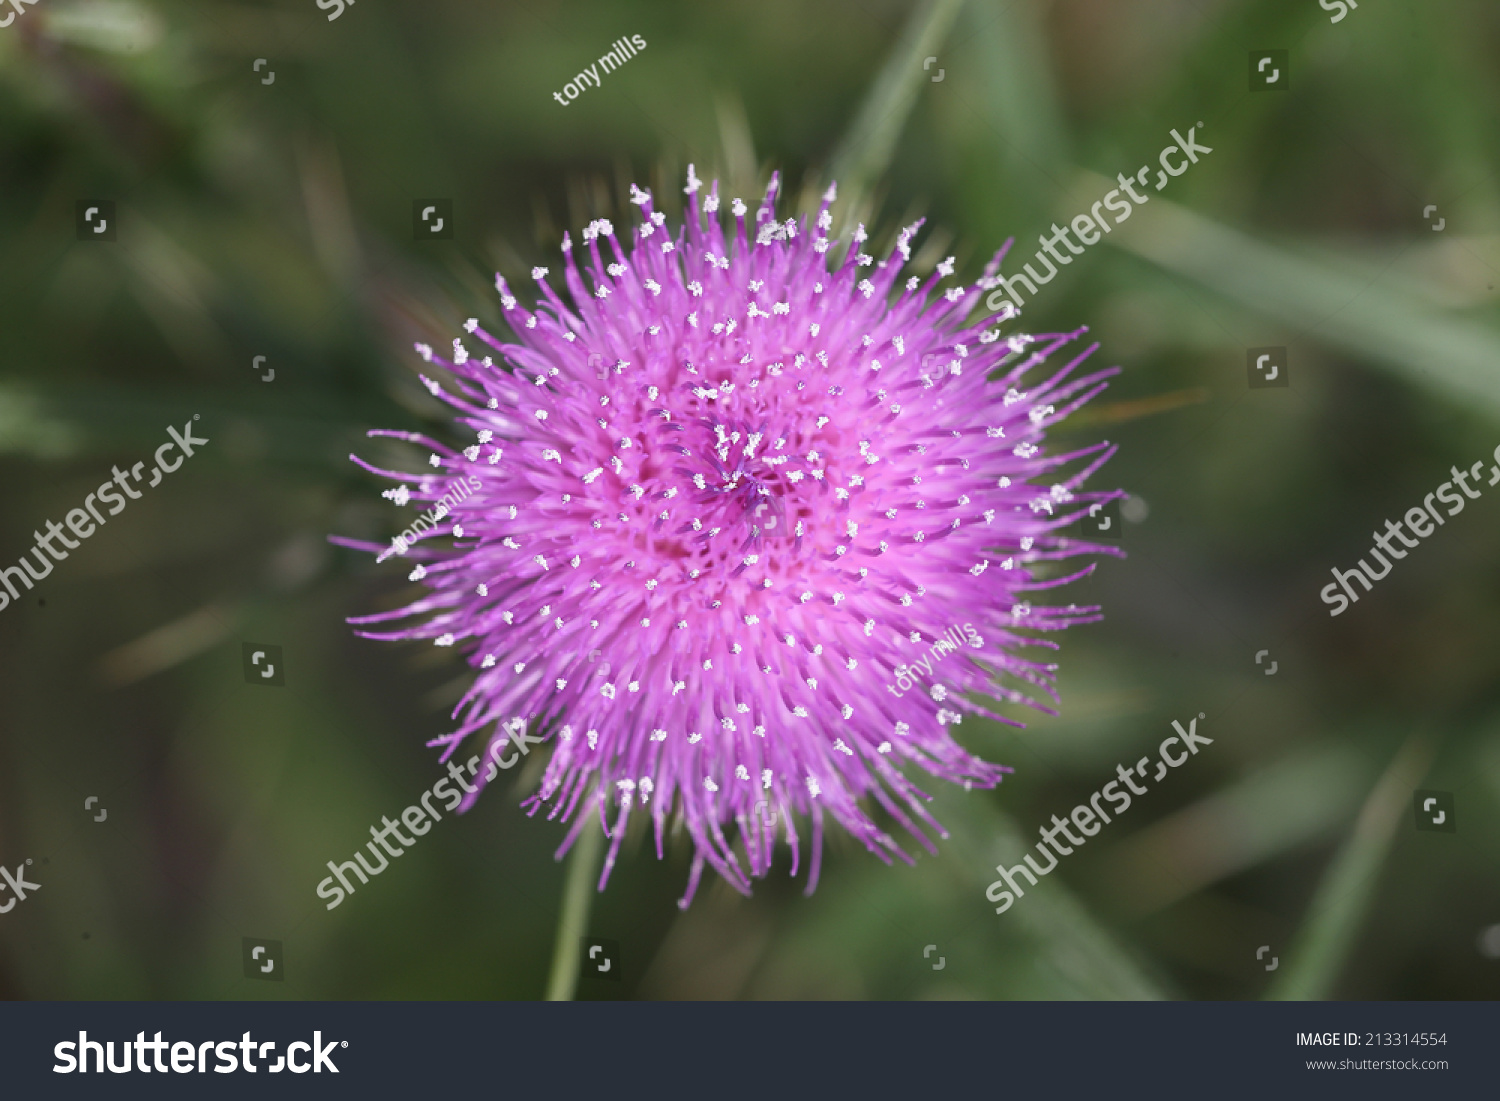 A Close Up Aerial View Of A Thistle Flower Focussing On The White